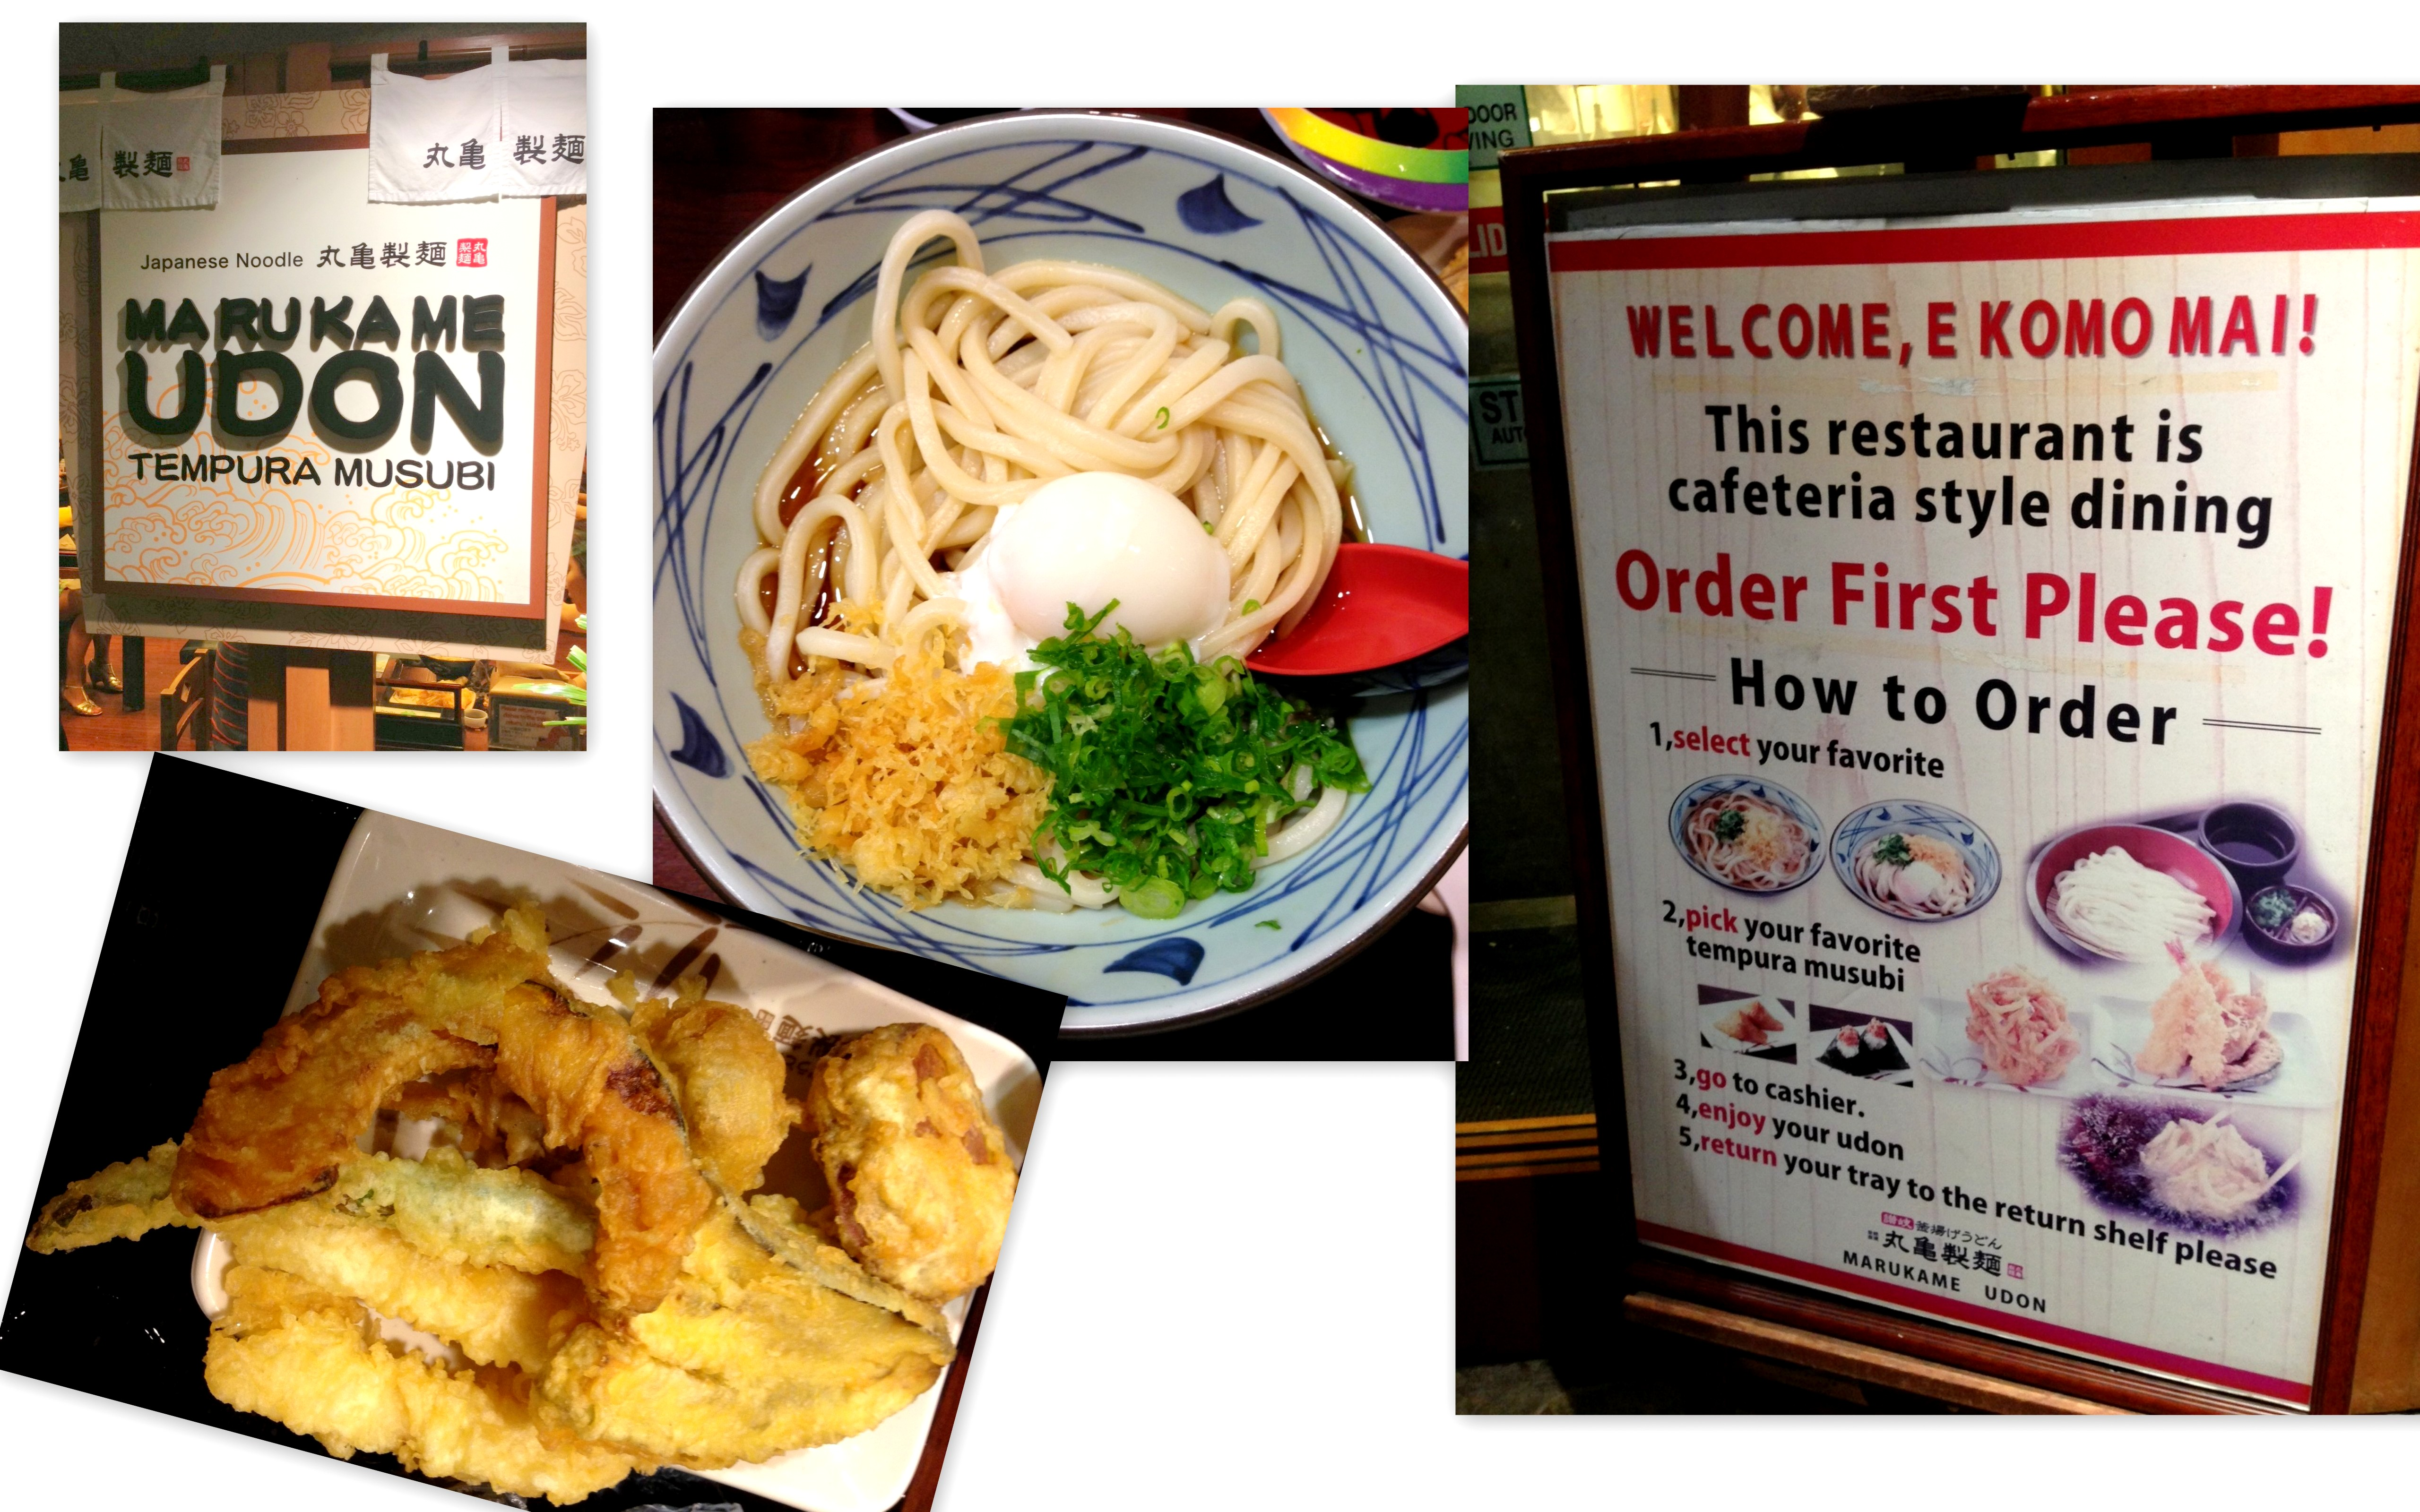 Marukame Udon: For satisfying Udon and Tempura cravings